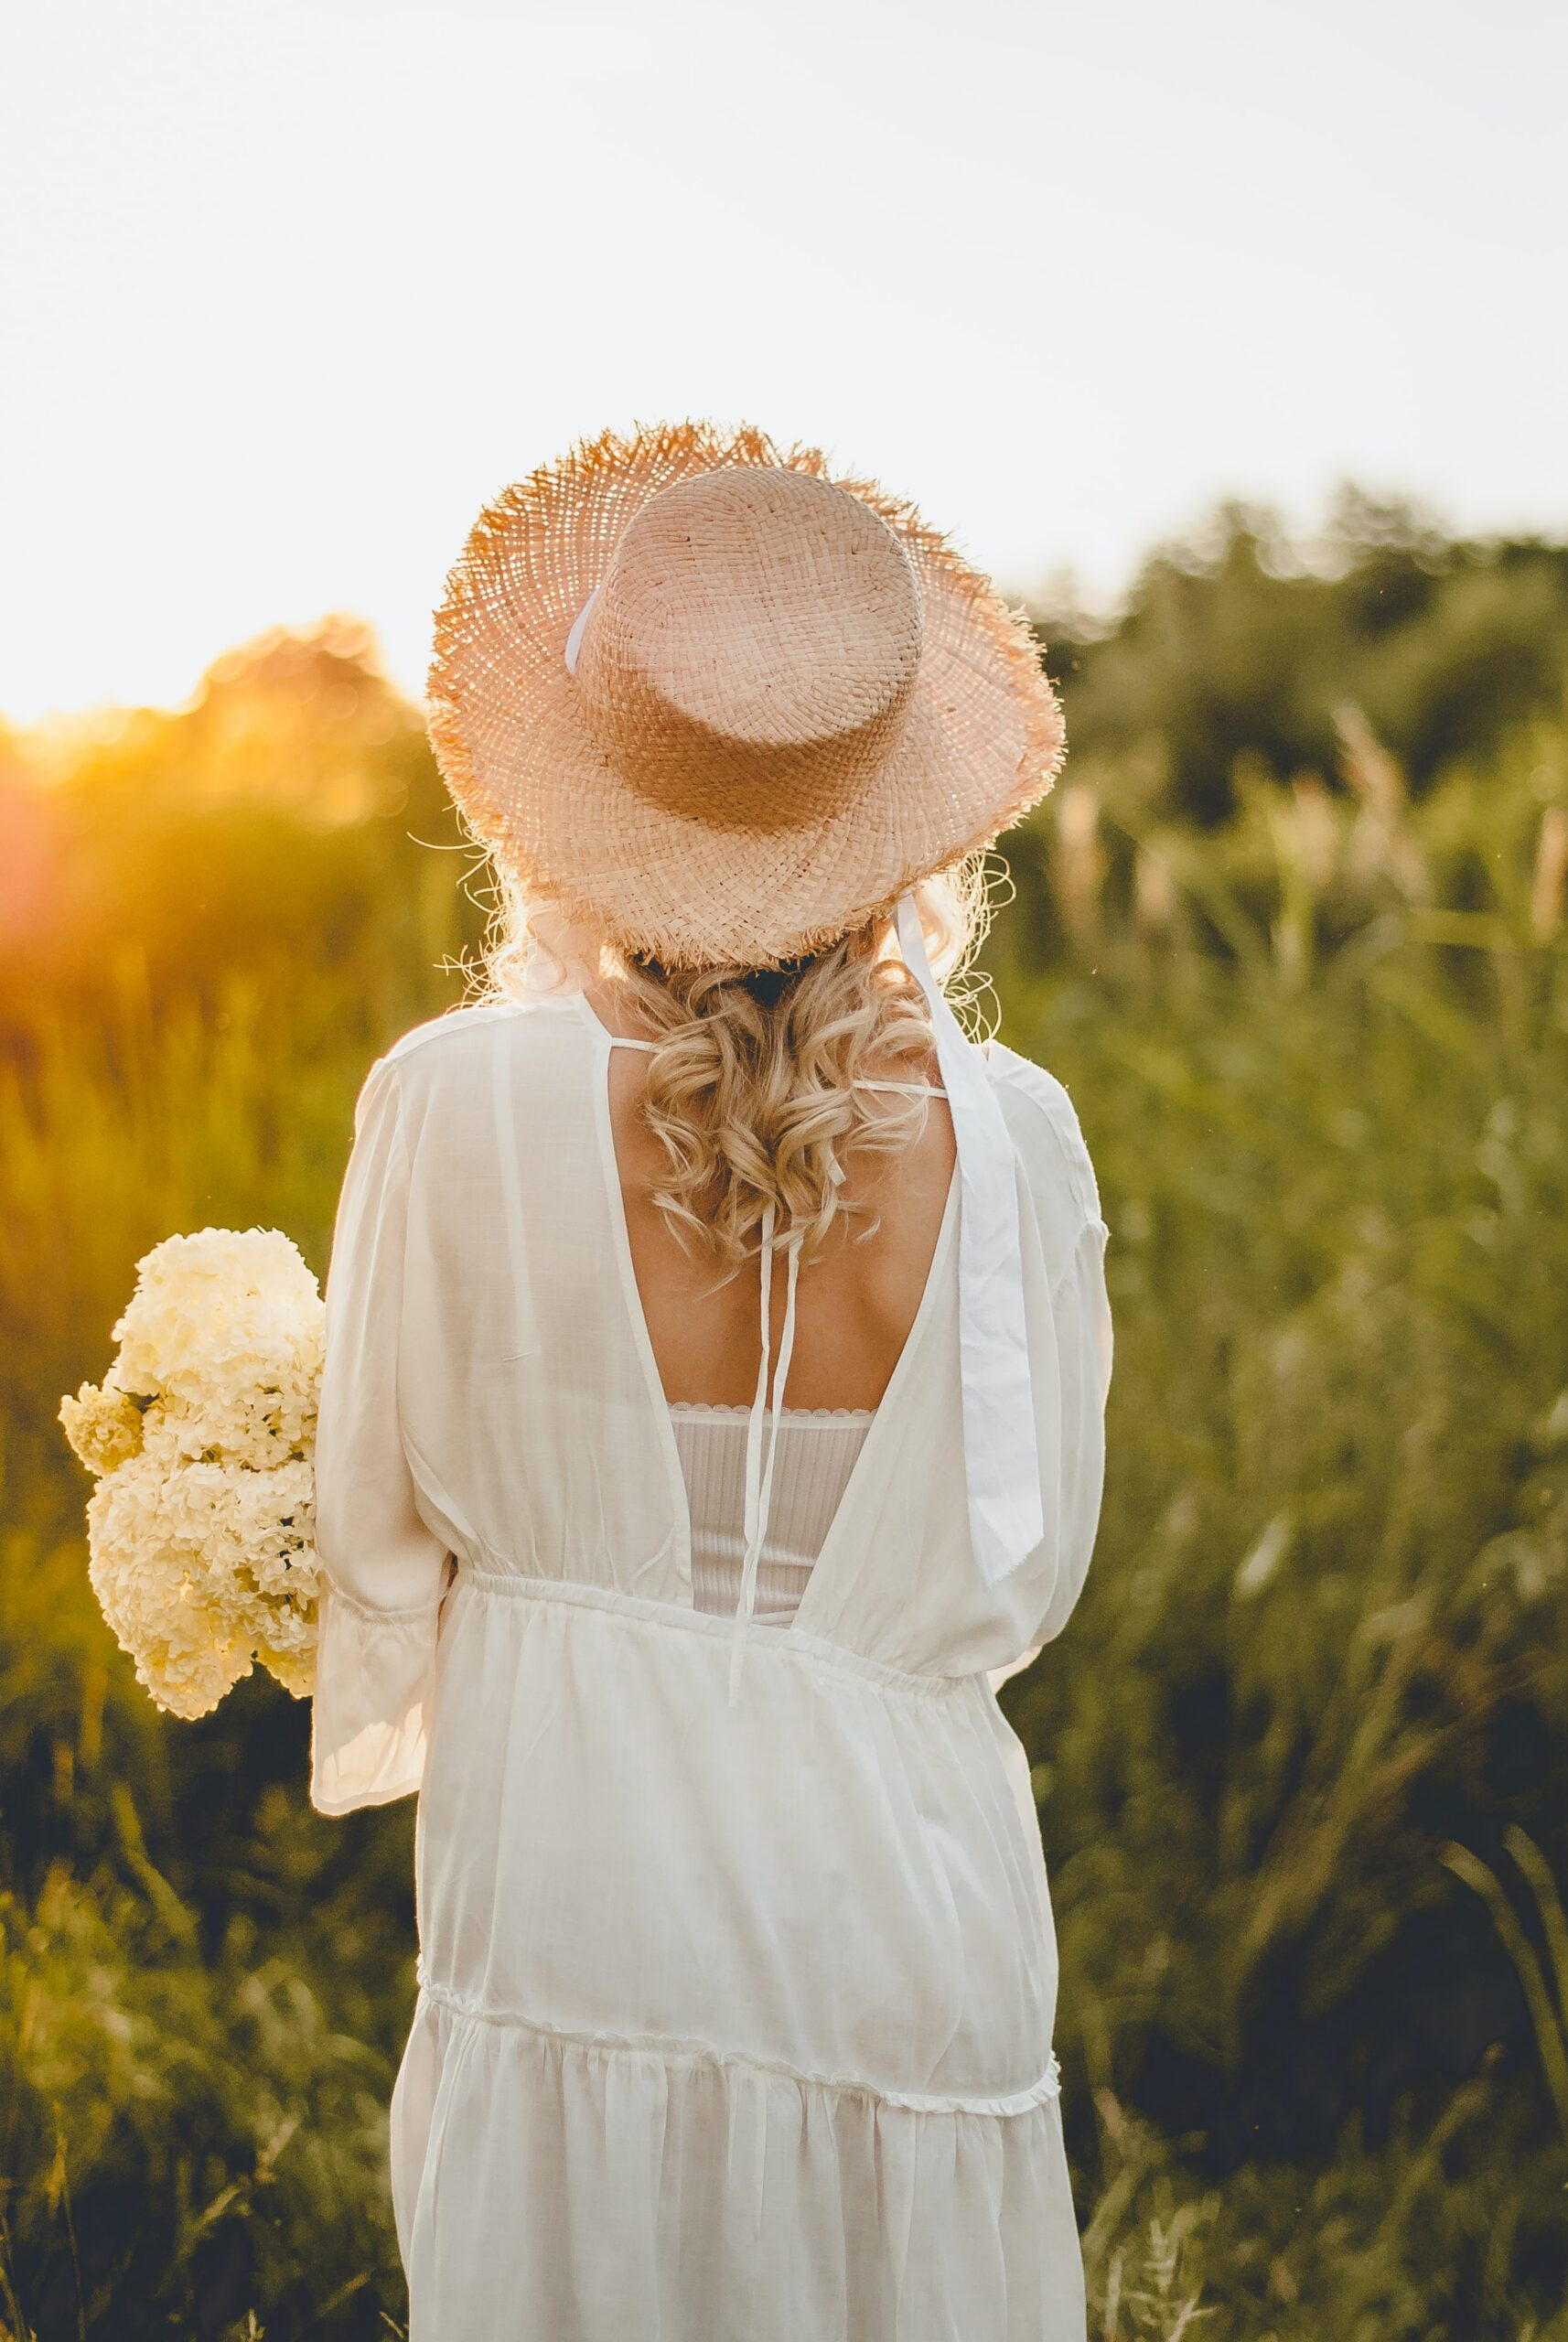 Girl in a white dress and straw hat